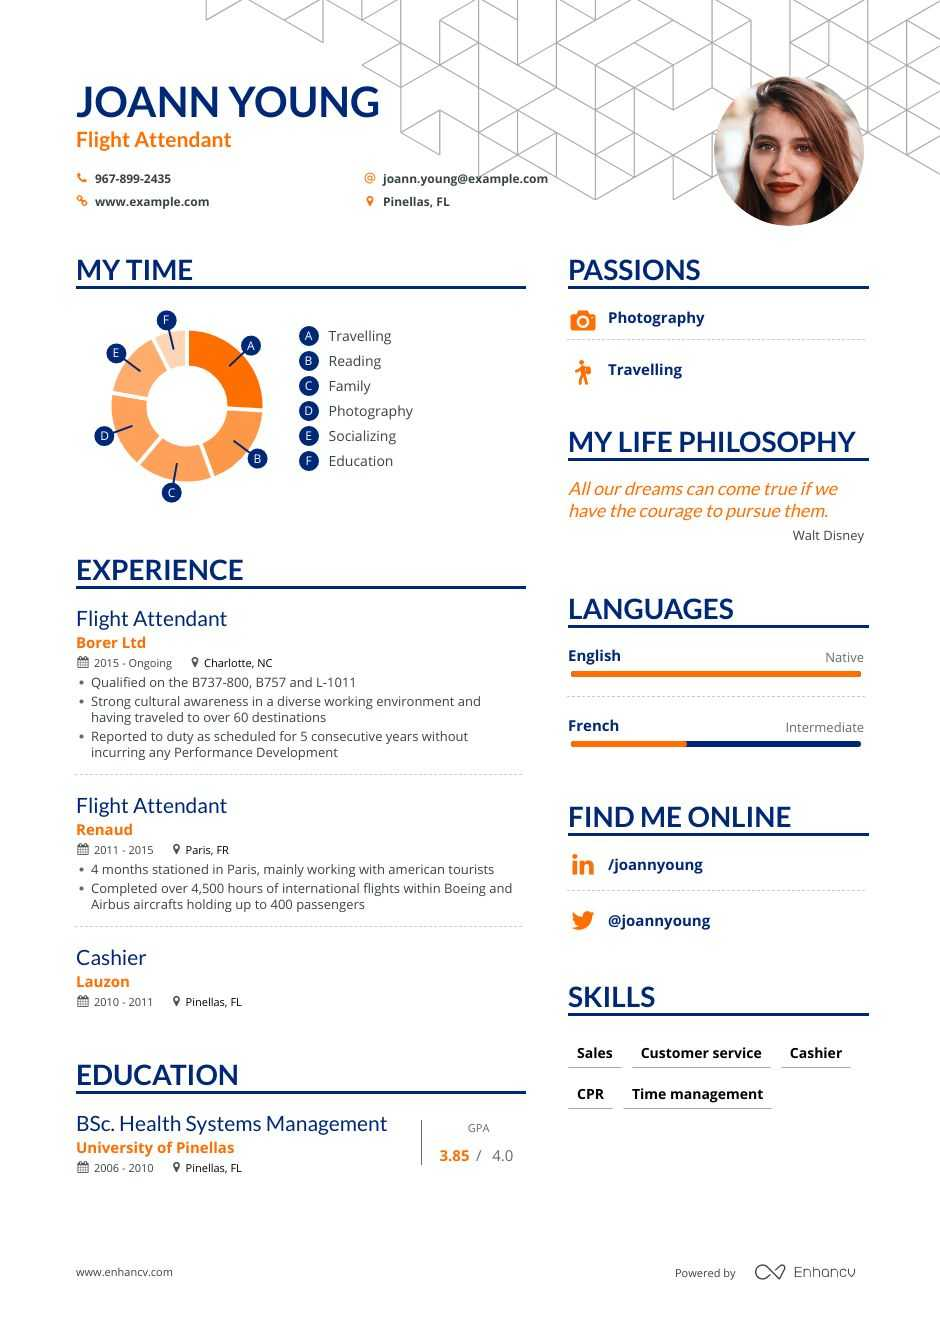 flight attendant resume examples guide pro tips enhancv personal care assistant sample Resume Flight Attendant Resume